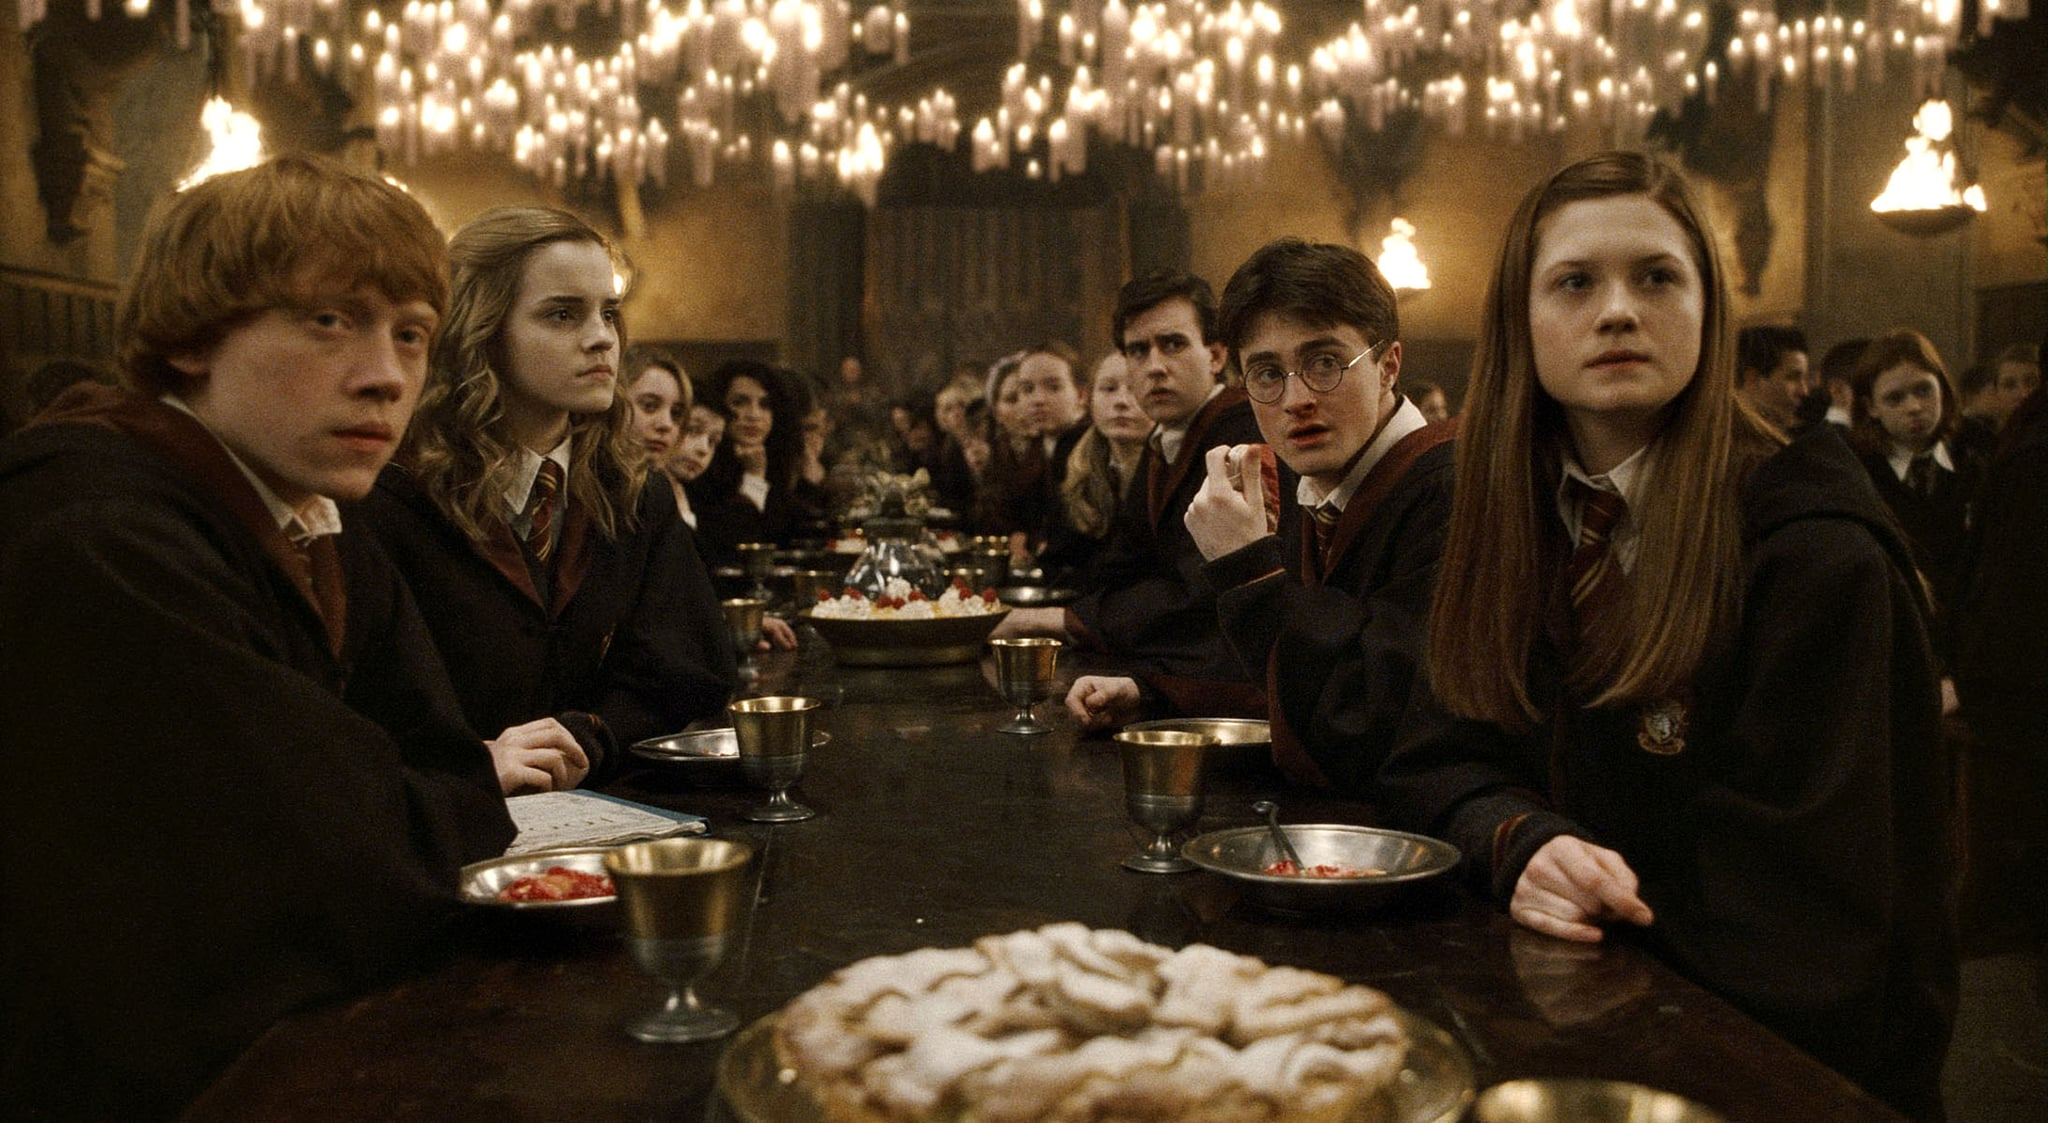 HARRY POTTER AND THE HALF-BLOOD PRINCE, Rupert Grint (left), Emma Watson (second from left), Matthew Lewis (third from right), Daniel Radcliffe (second from right), Bonnie Wright (right), 2009. Warner Bros./courtesy Everett Collection